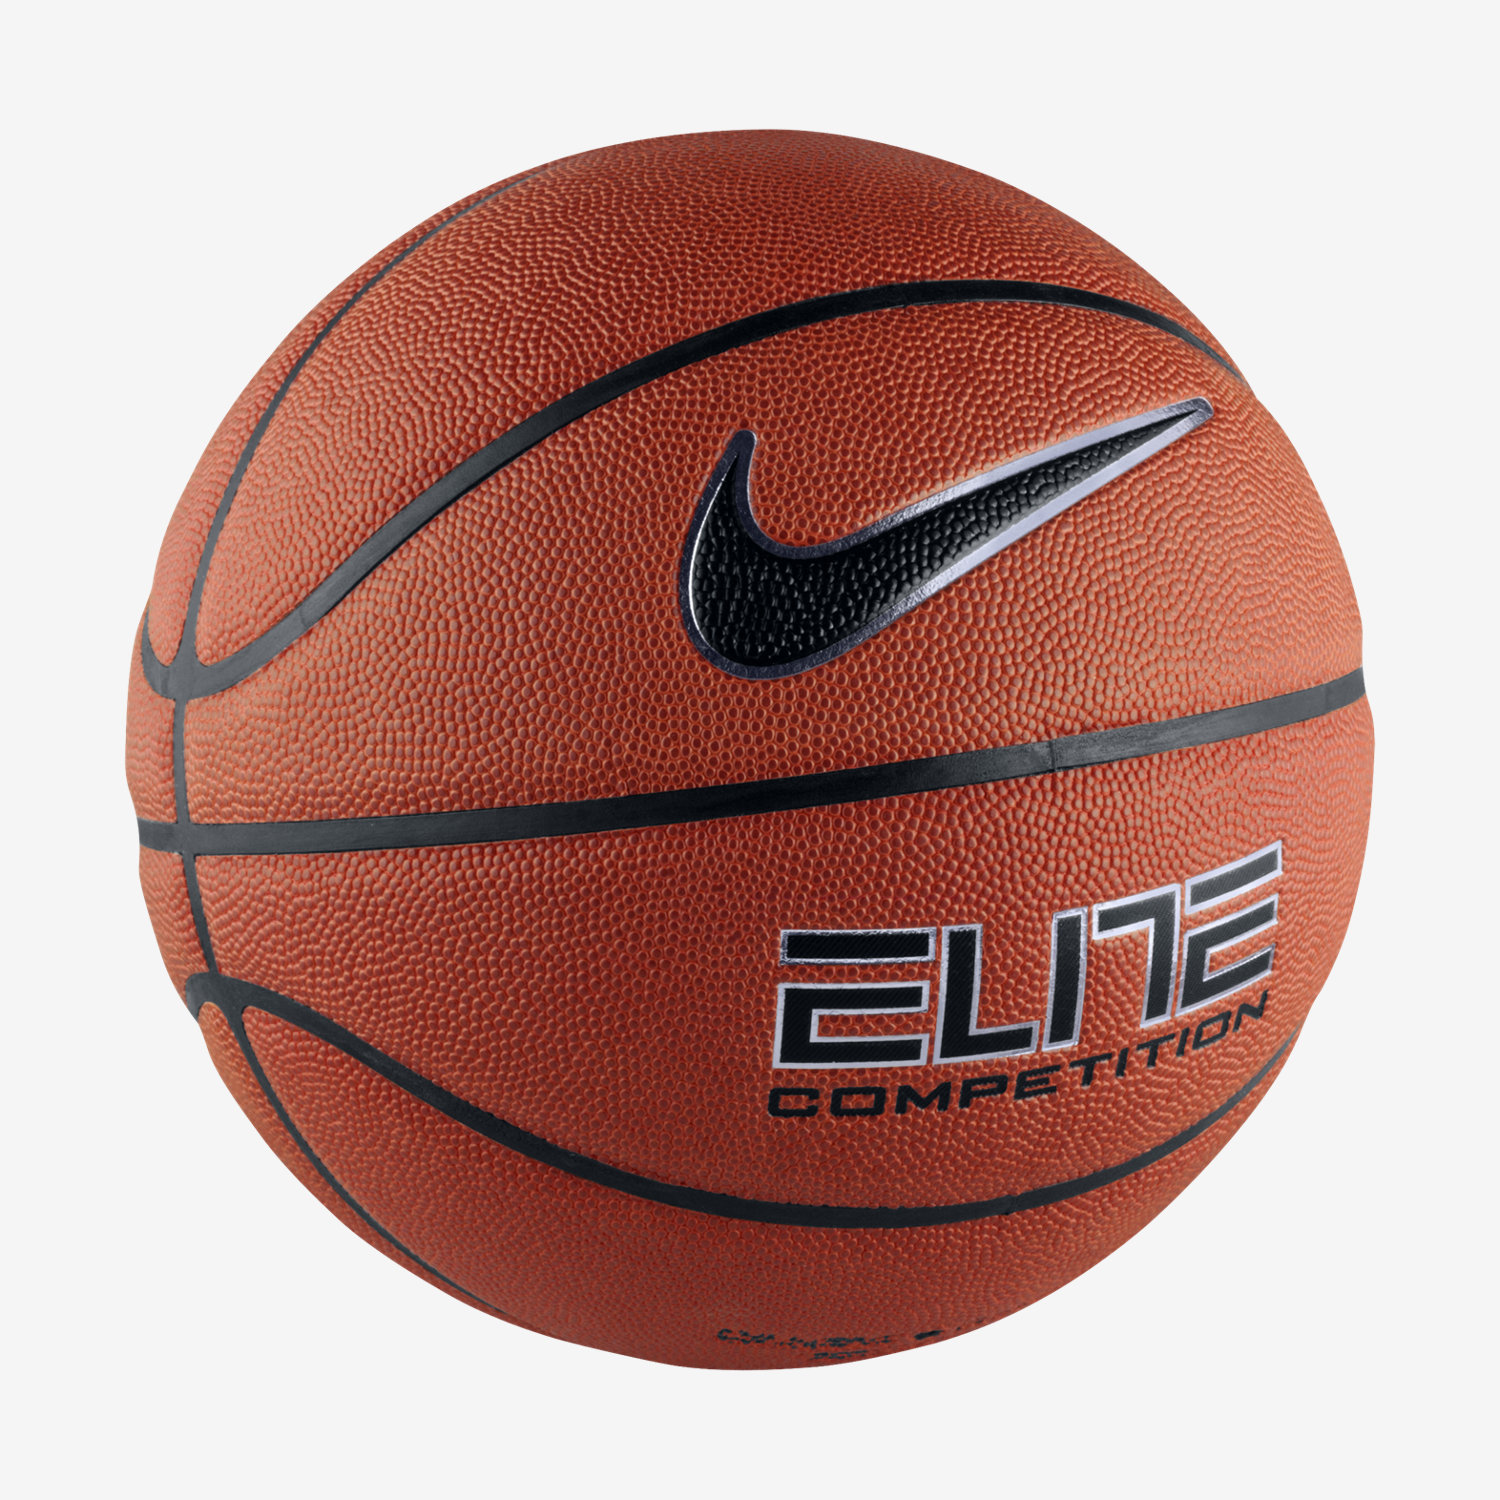 UPDATED Basketball and Tournament Schedules